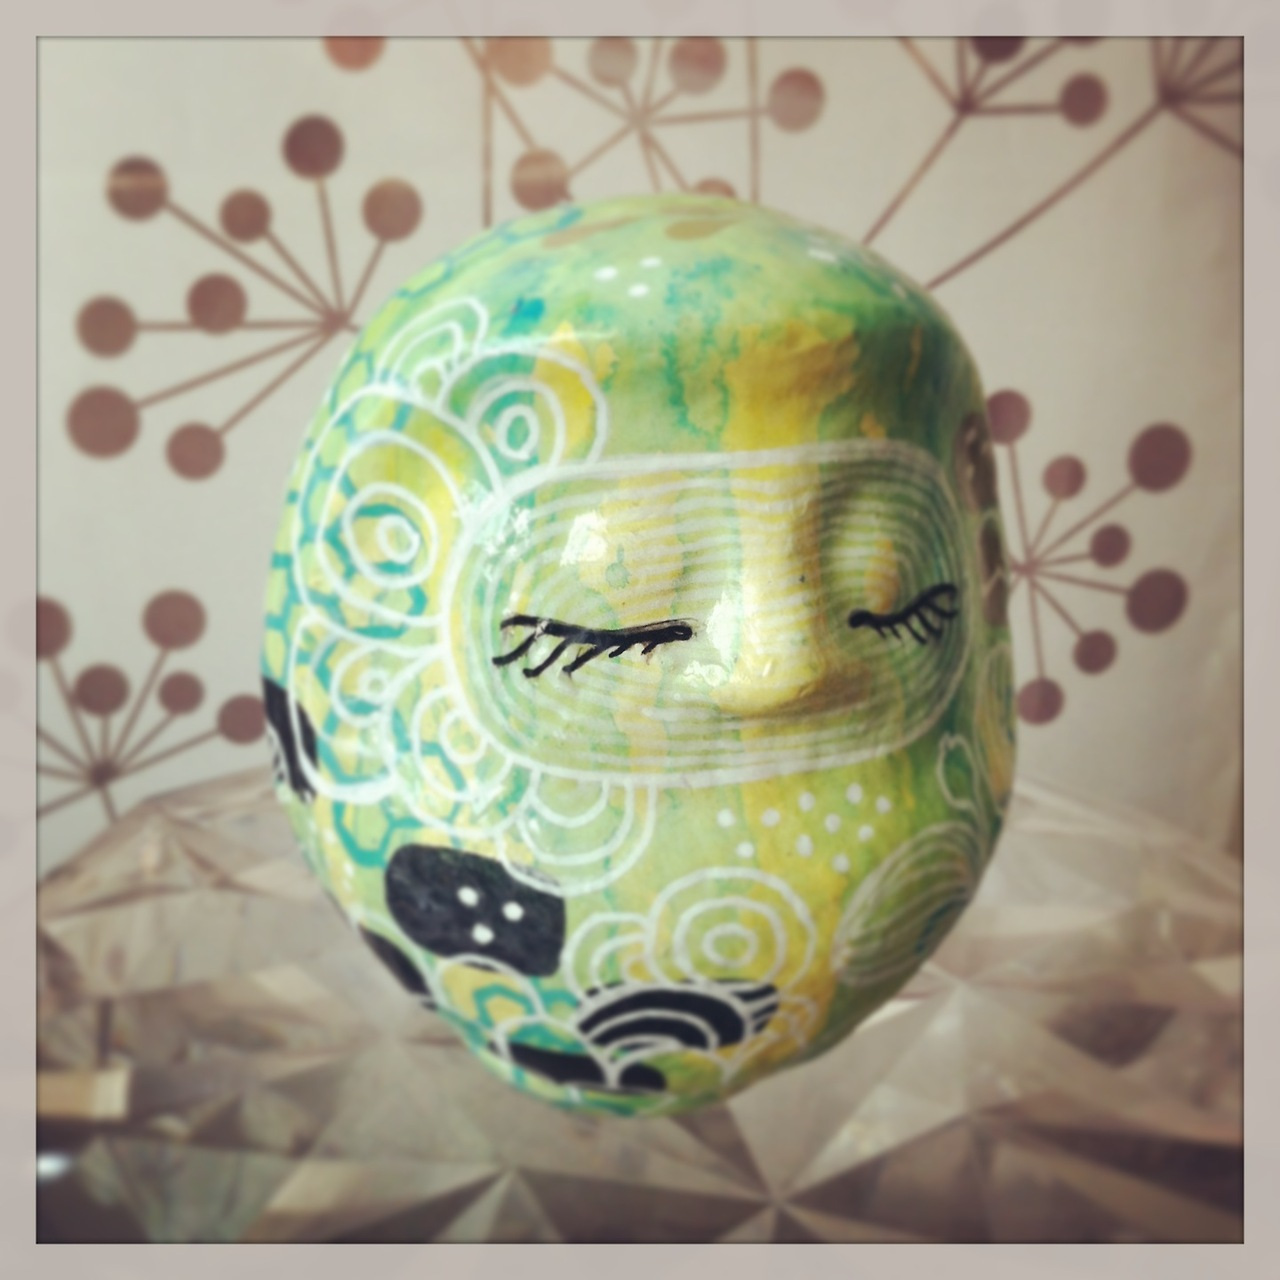 Once again, myself and 100 other artists have painted custom Daruma for the    Nikkei National Museum 6th annual BLOOM Art Auction     Silent Auction + Party: Saturday, May 24, 2014  7:00pm – 9:30pm  Tickets: $20 + tax (members), $25 + tax (non-members)    Exhibit: May 10-24, 2014 admission by donation   Fundraiser Showcases Traditional Japanese Folk Art with a Contemporary Twist   Click  here  to buy tickets or learn more